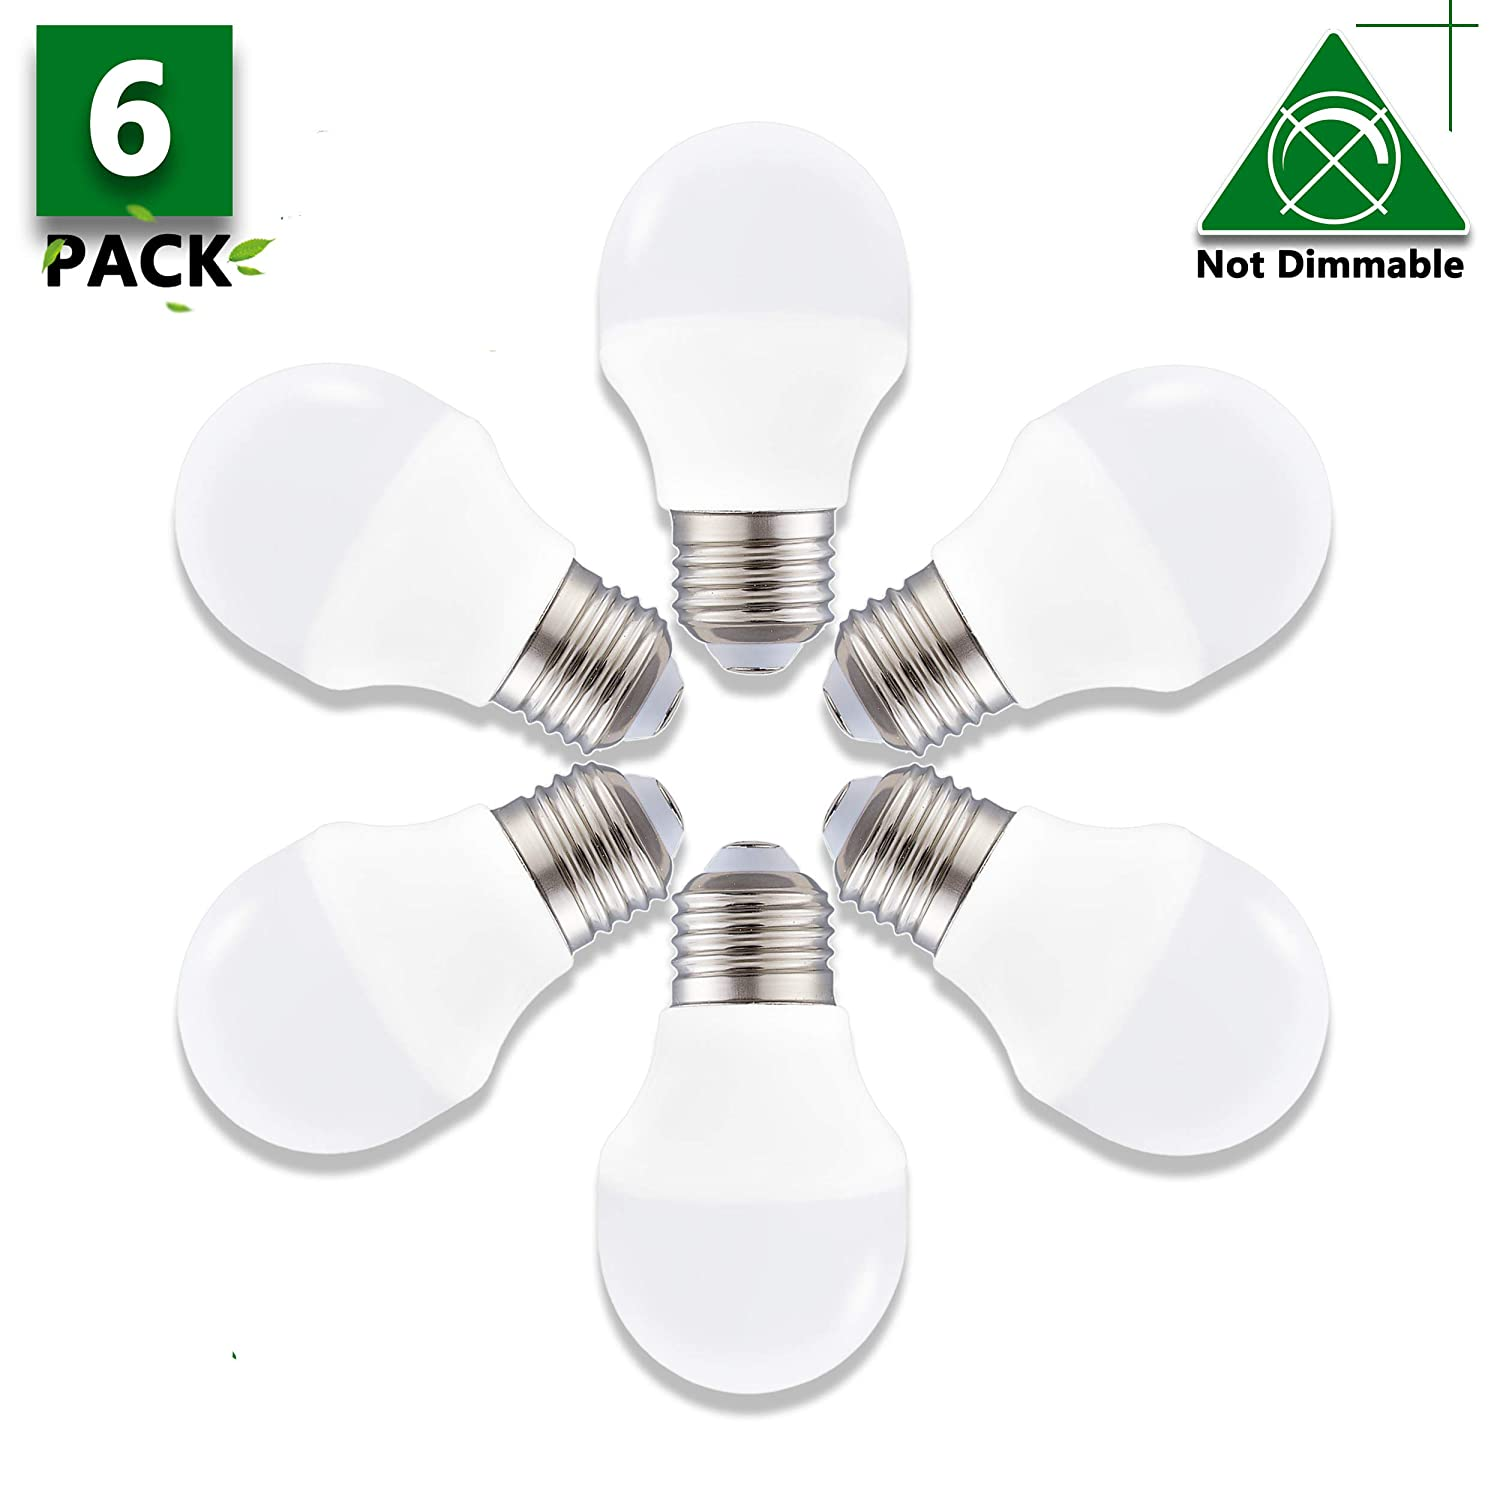 Non Dimmable A15 LED Bulb,40 Watt LED Light Bulb Equivalent,E26 Base Edison LED Bulb 5000K Daylight White LED Lights 120V 360Lumens Appliance Light Bulb for Home Lighting Decorative(6 Pack)